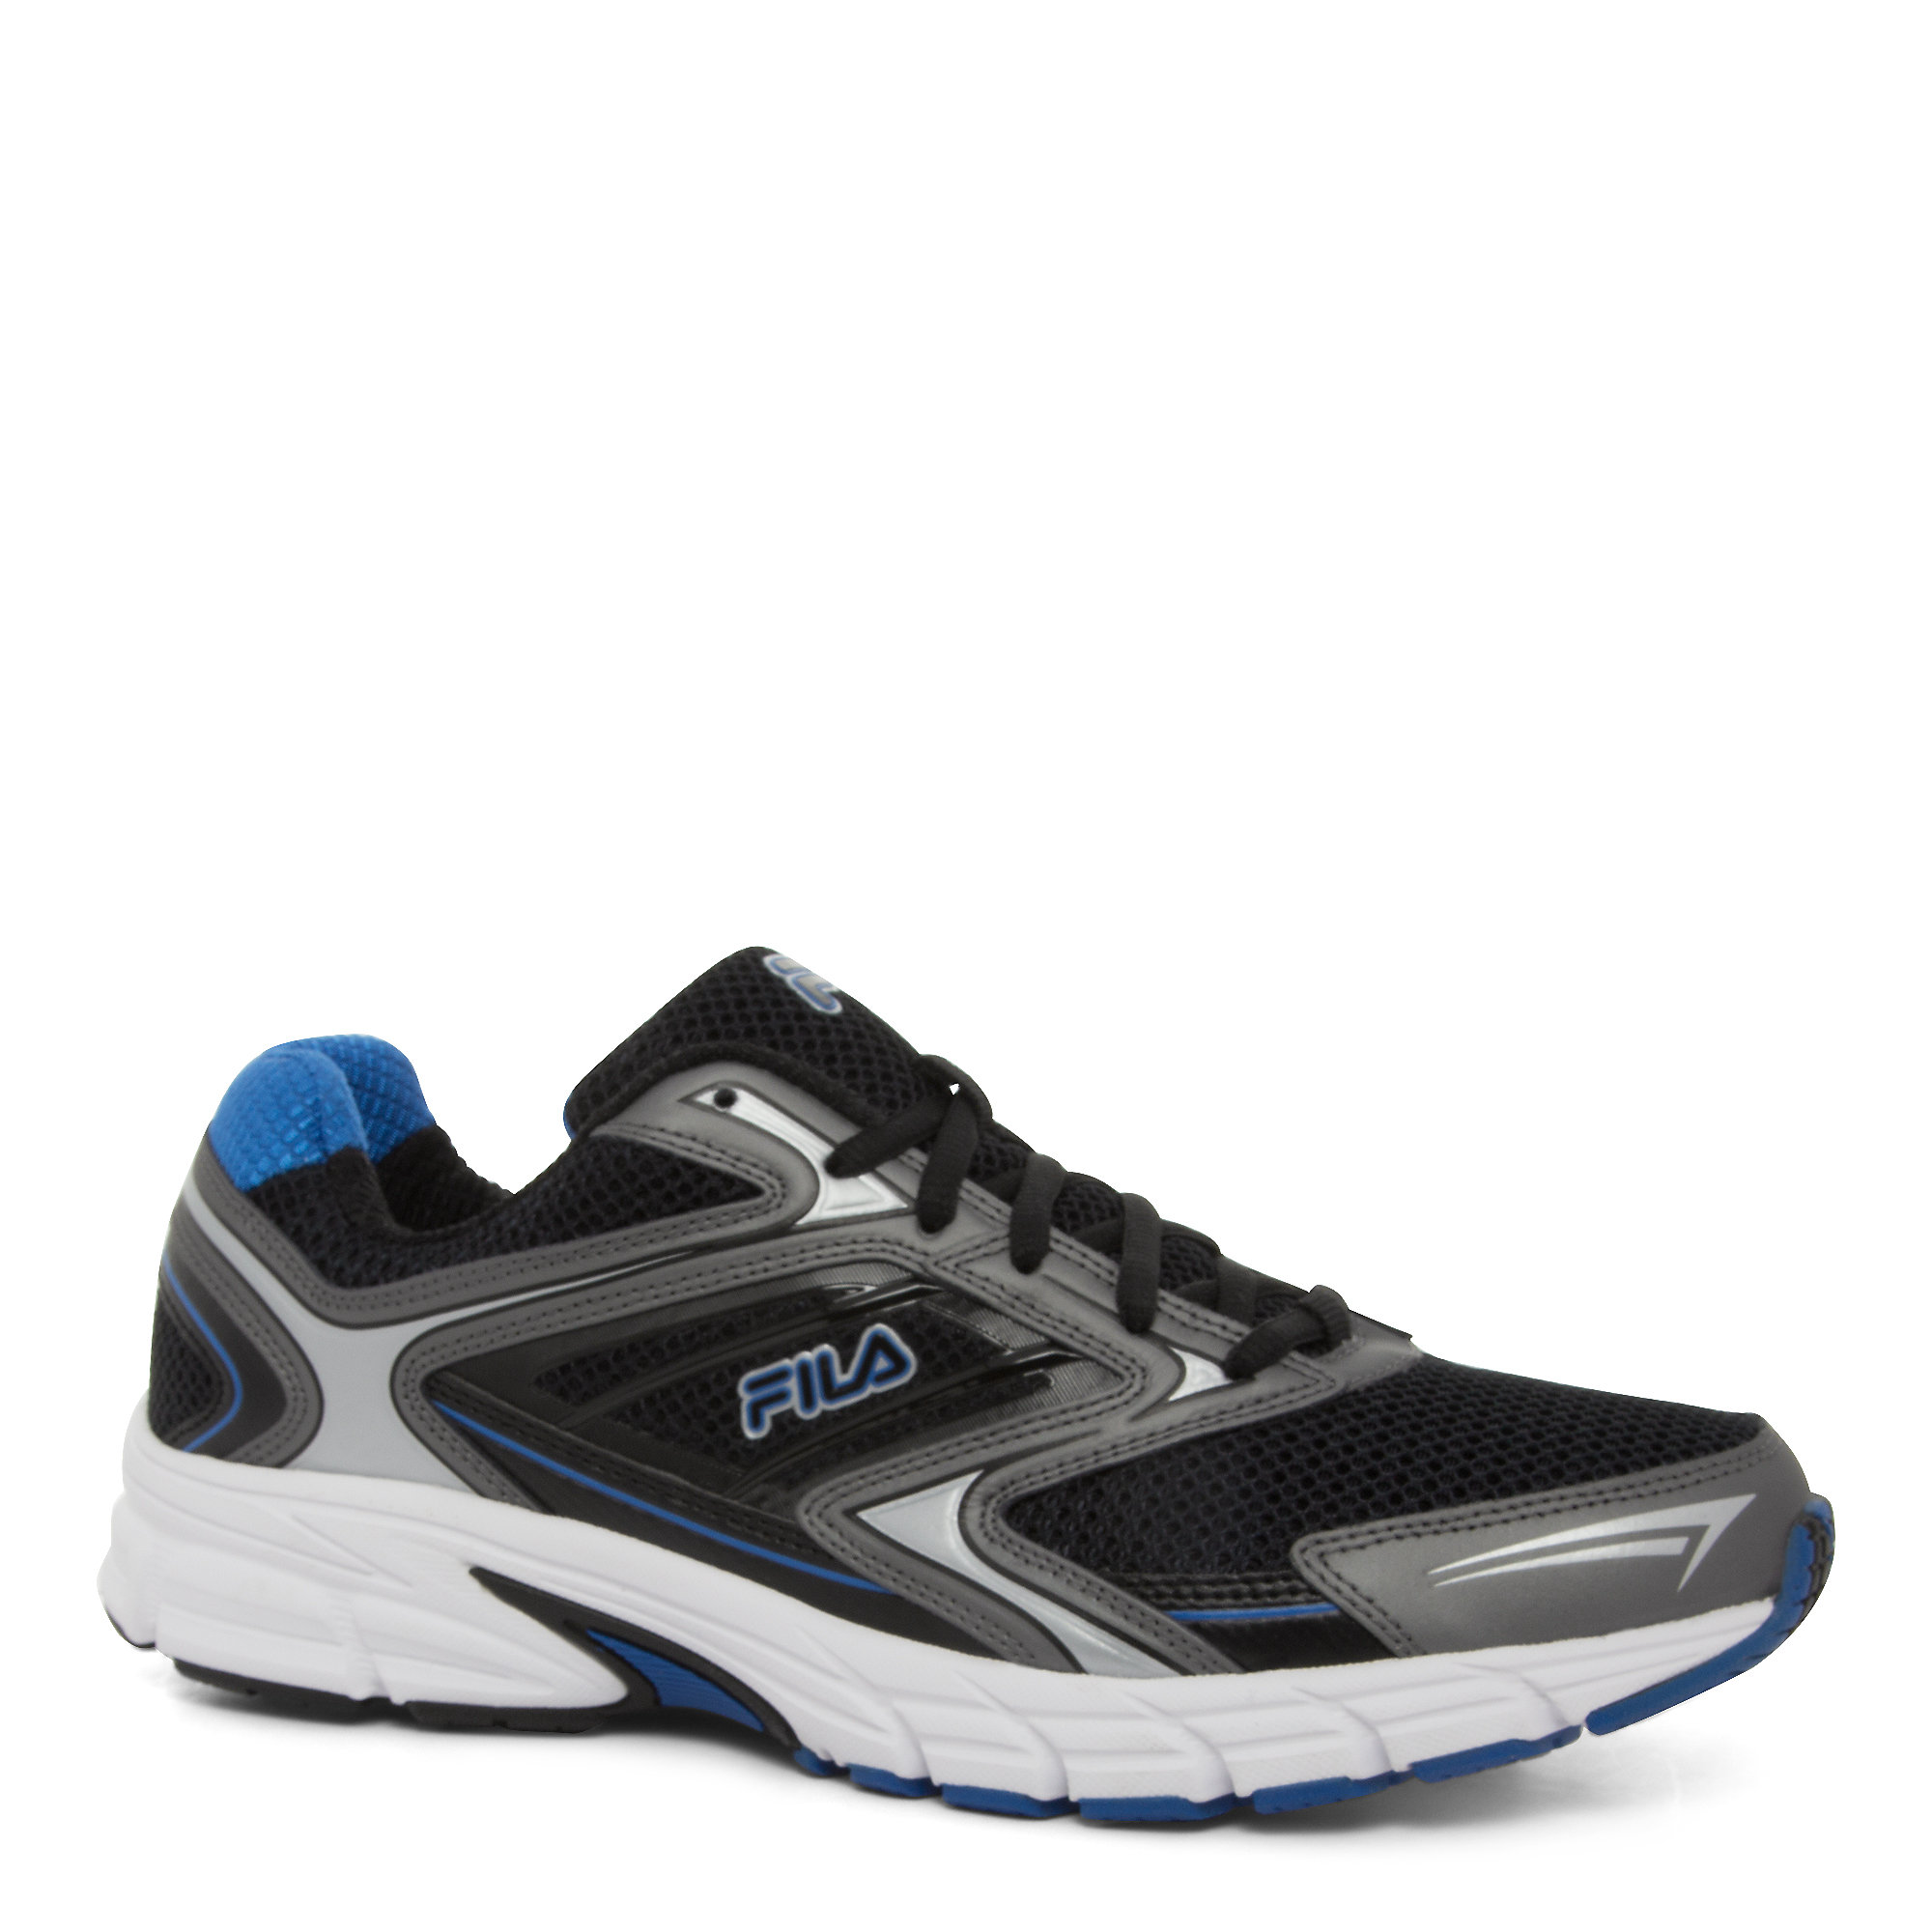 Puma Arial Reflective Running Shoes